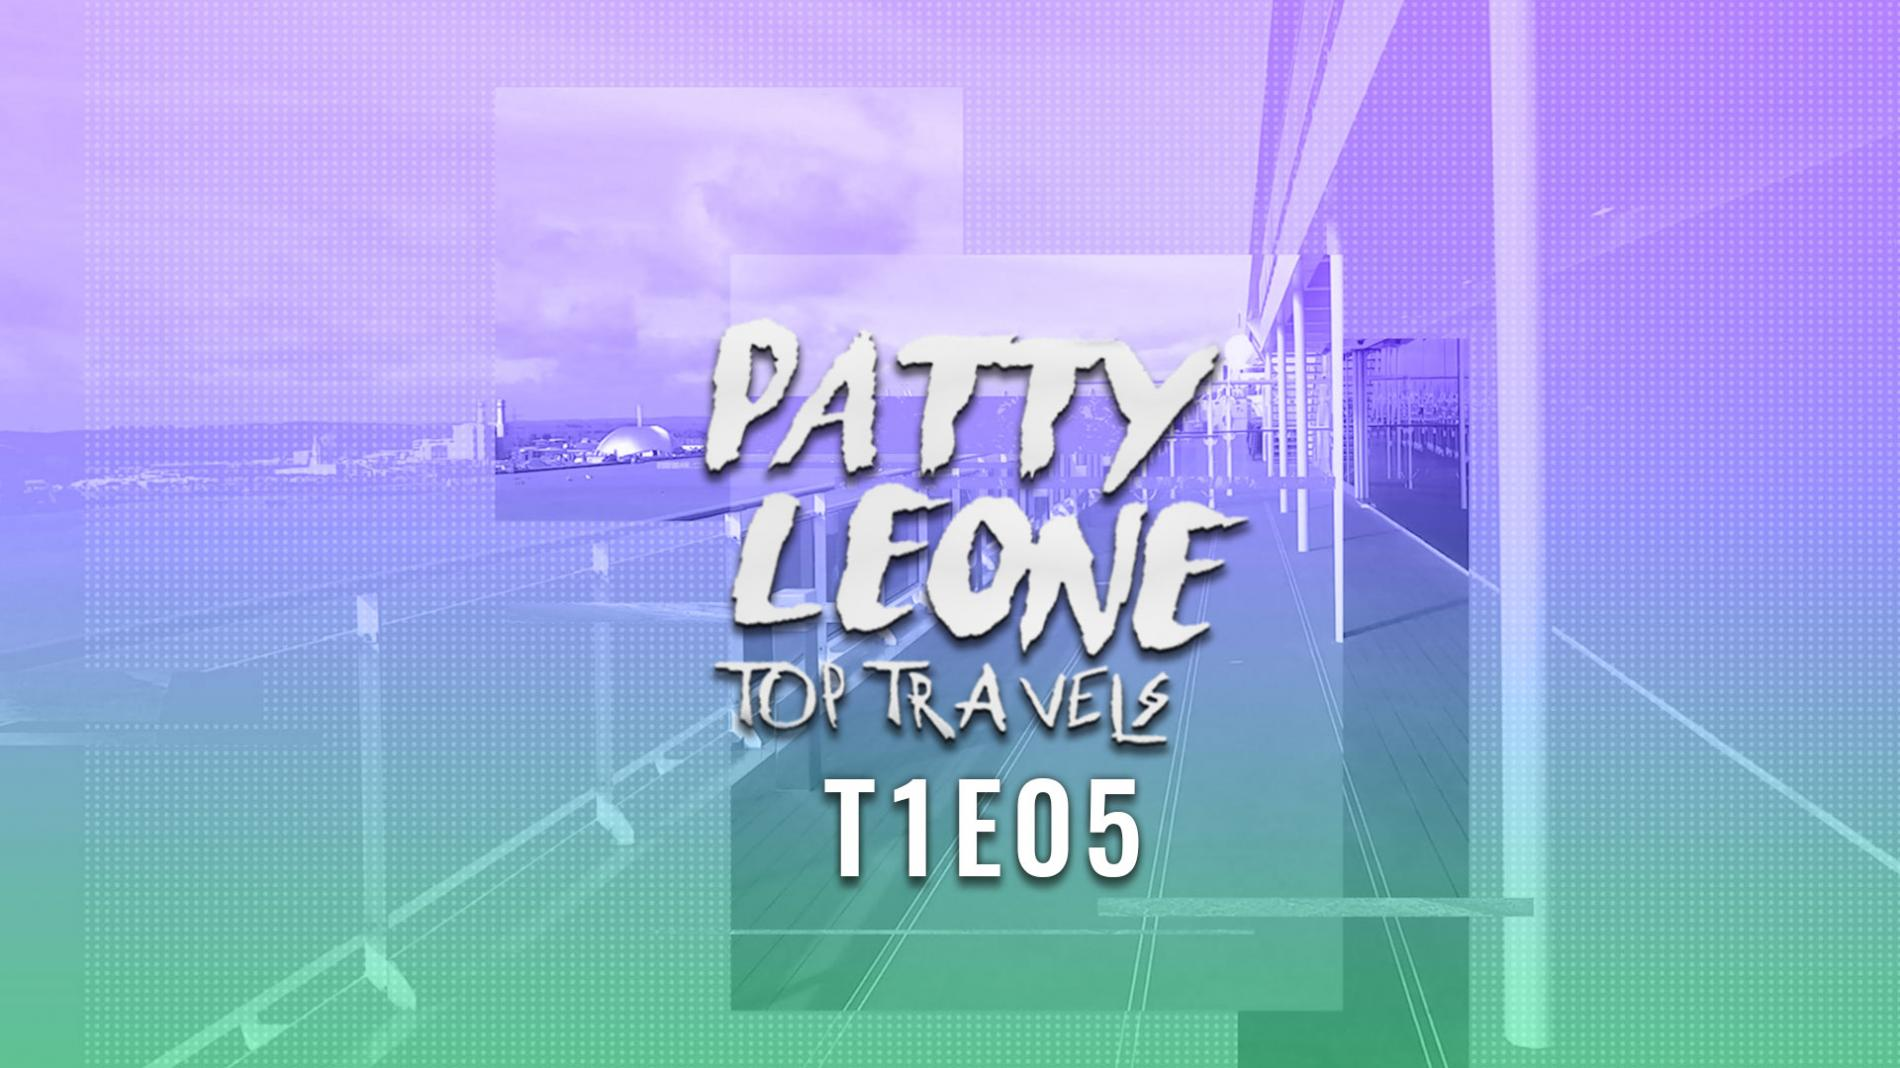 Patty Leone Top Travels - Temporada T01 - Episódio E05